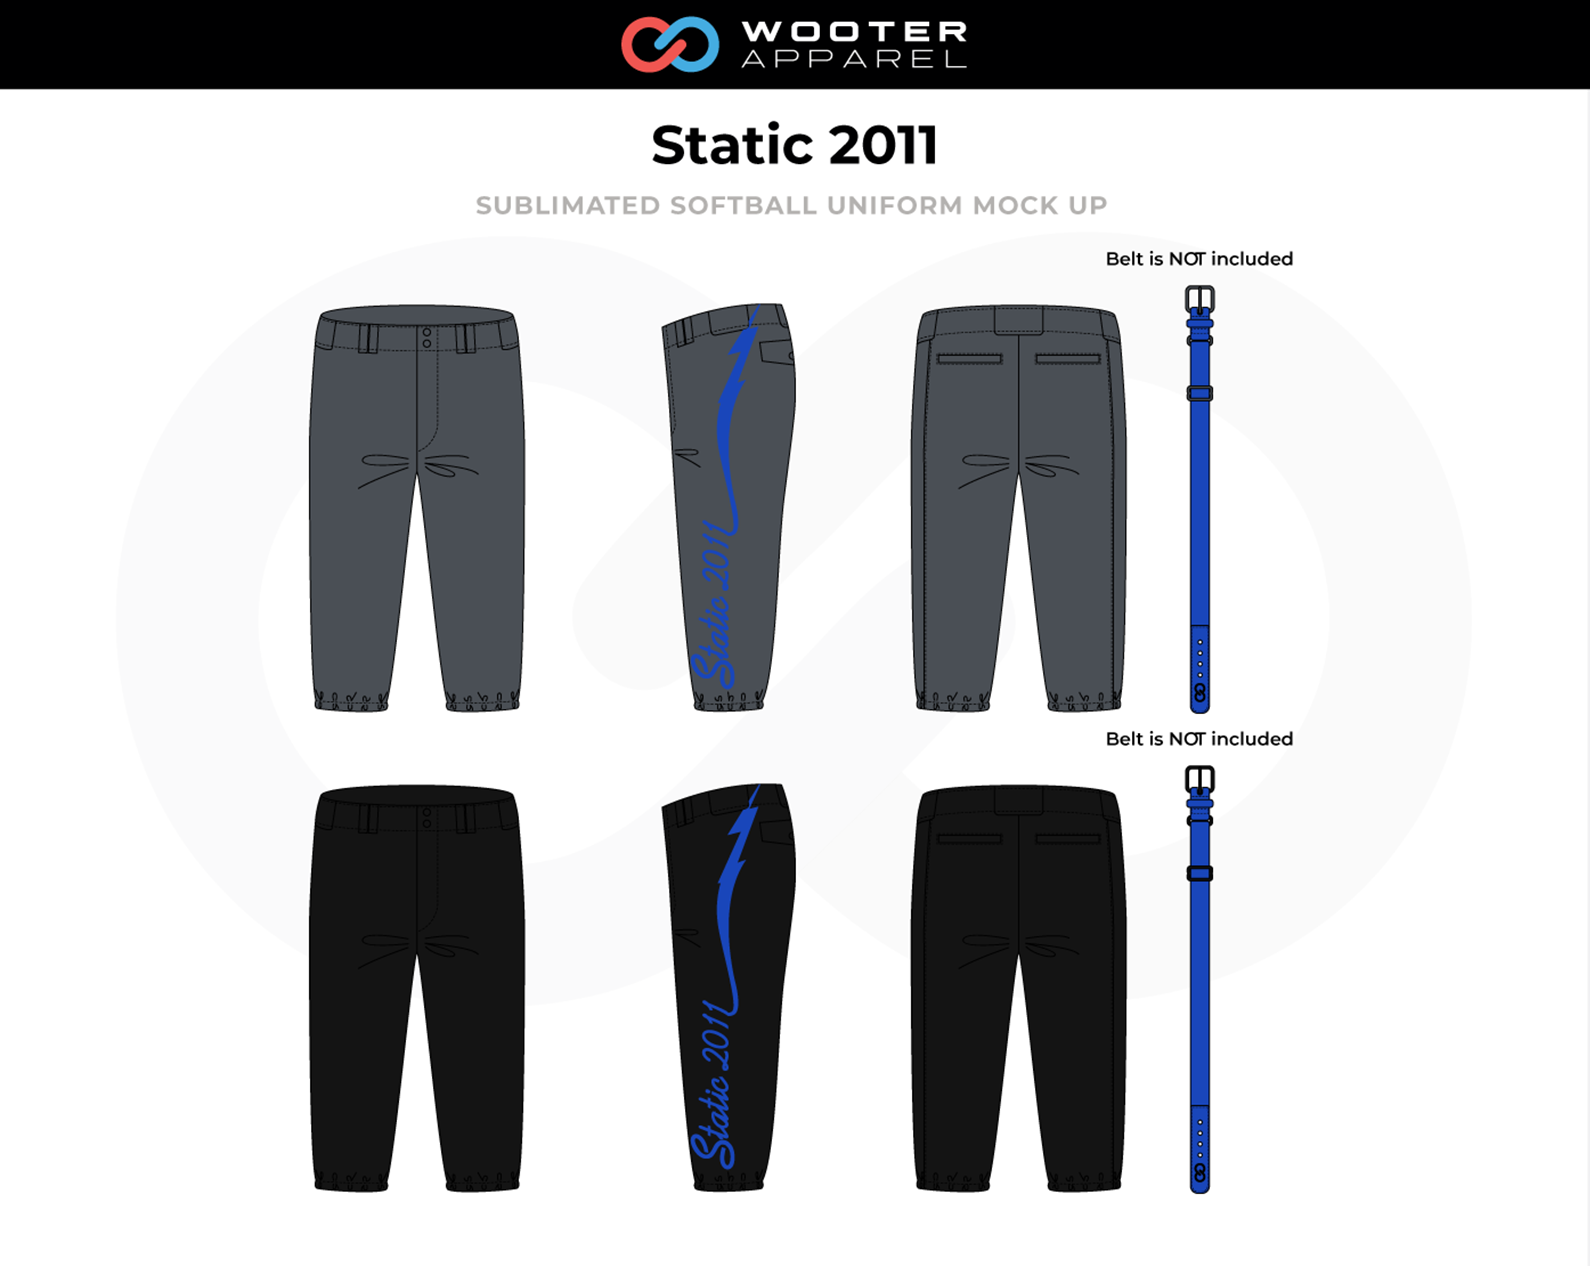 Static-2011-Sublimated-Softball-Knickers_v1_2018.png